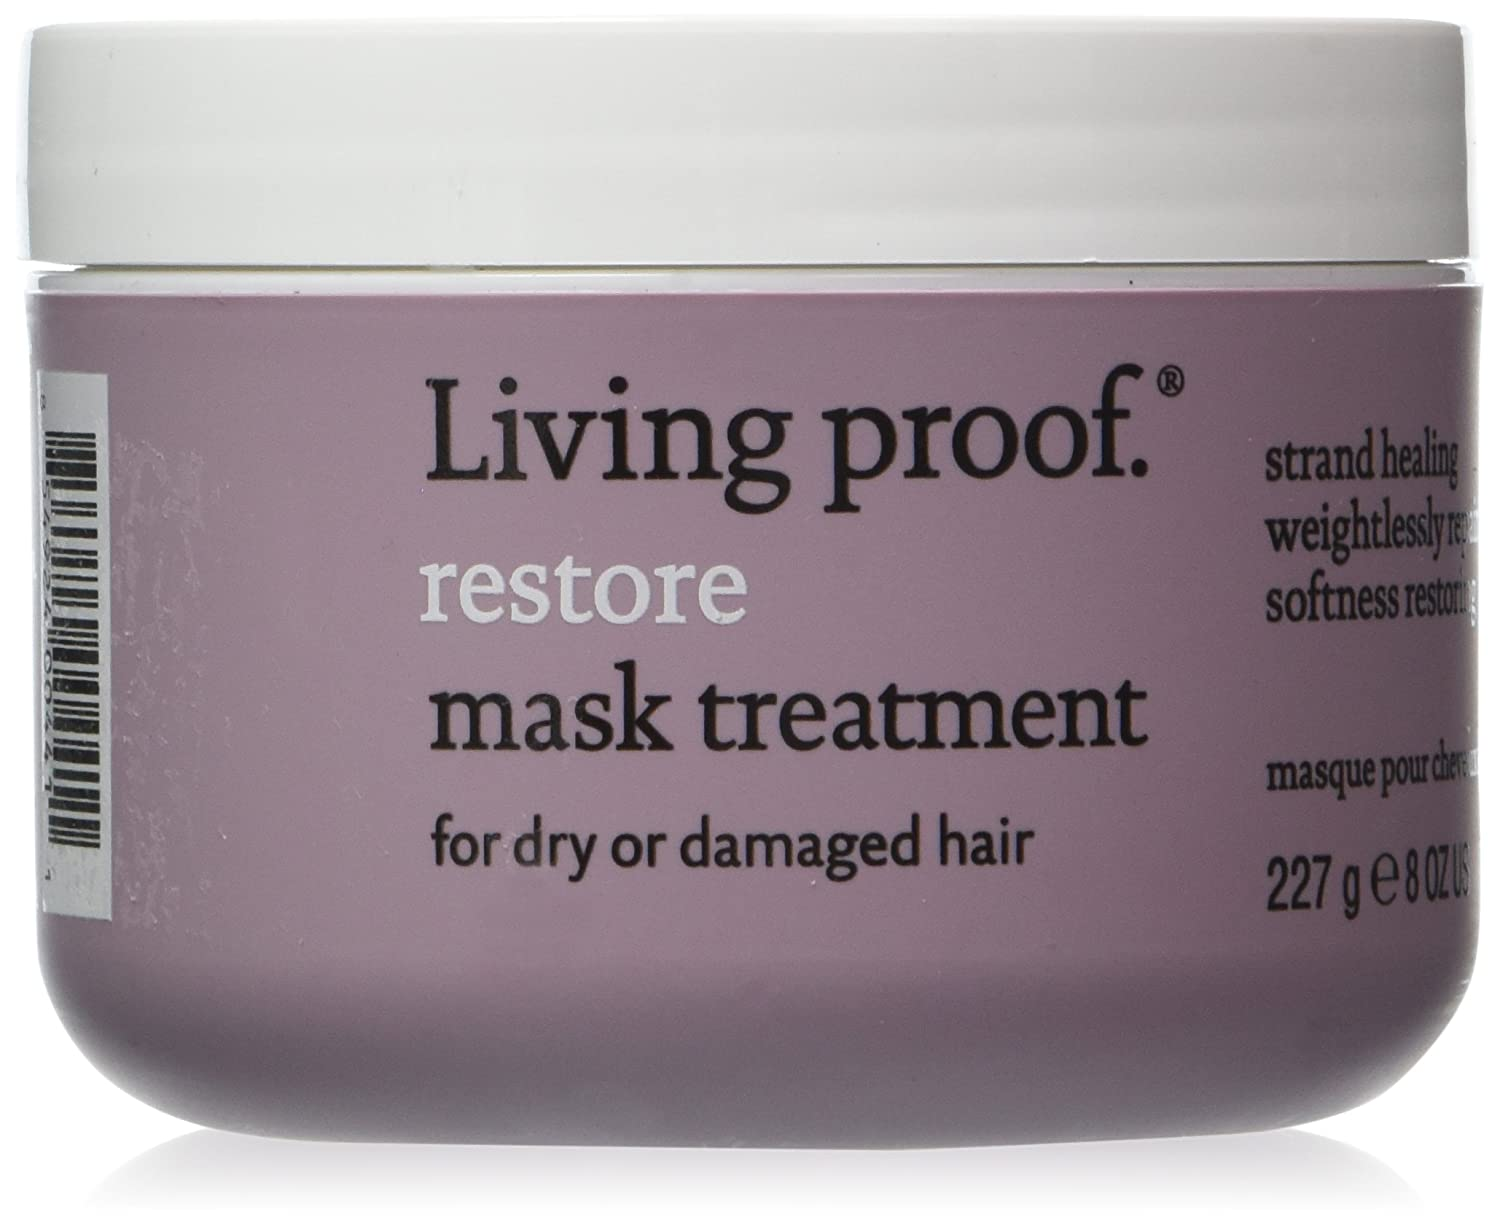 Restore Mask Treatment - Dry or Damaged Hair by Living Proof for Unisex - 8 oz Mask U-HC-8904